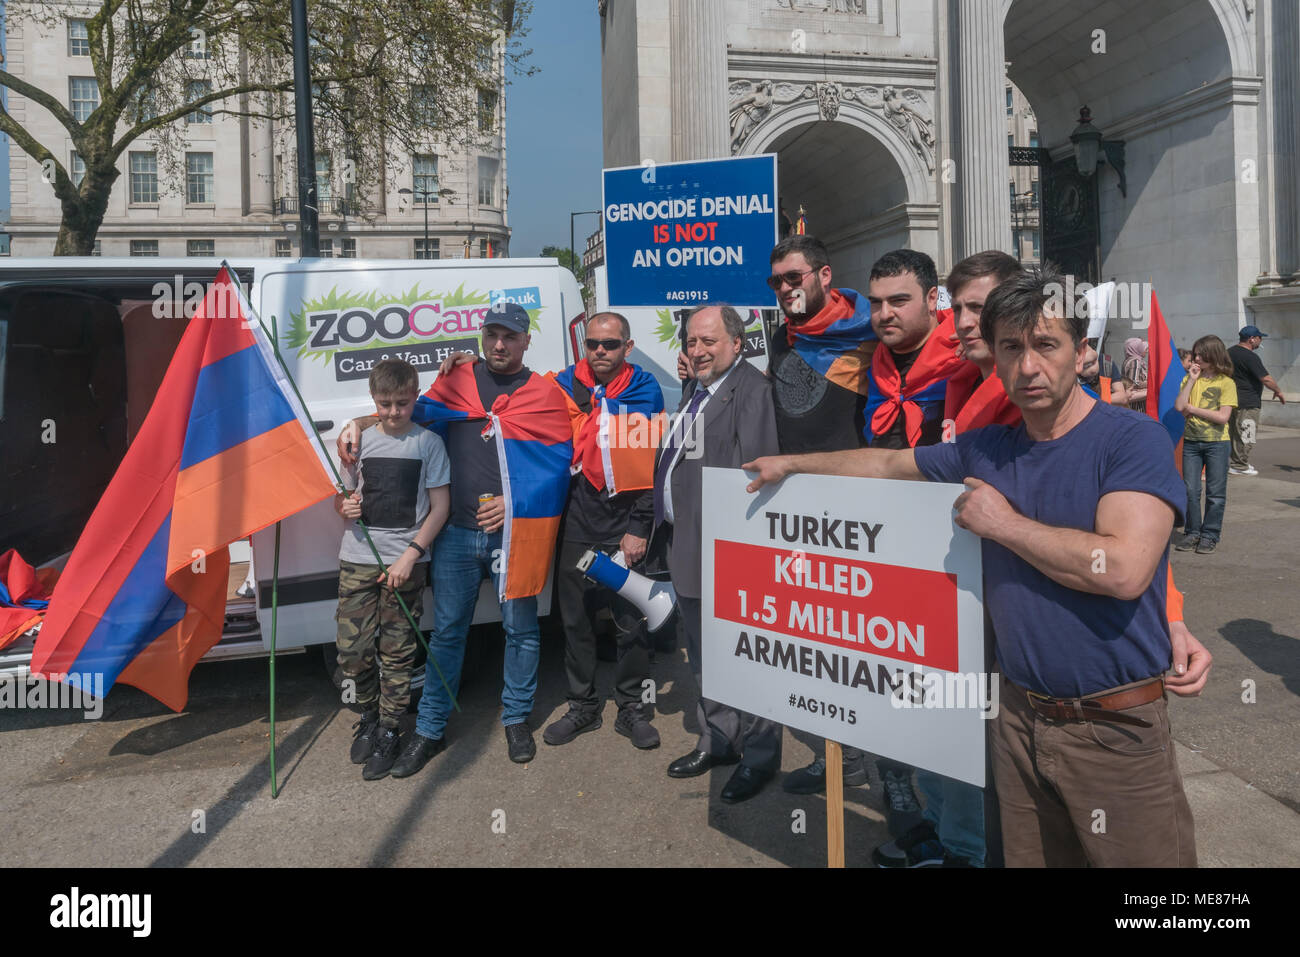 London, UK. 21st April 2018. Armenians meet to march through London from Marble Arch to the Cenotaph at the start of a series of events commemorating the 103rd anniversary of the beginning of the Armenian Genocide, and demanding the UK to follow the lead of many other countries and recognise the Armenian genocide. Between 1915 and 1923 Turkey killed 1.5m Armenians, around 70% of the Armenian population, but Turkey still refuses to accept these mass killings as genocide. Credit: Peter Marshall/Alamy Live News - Stock Image